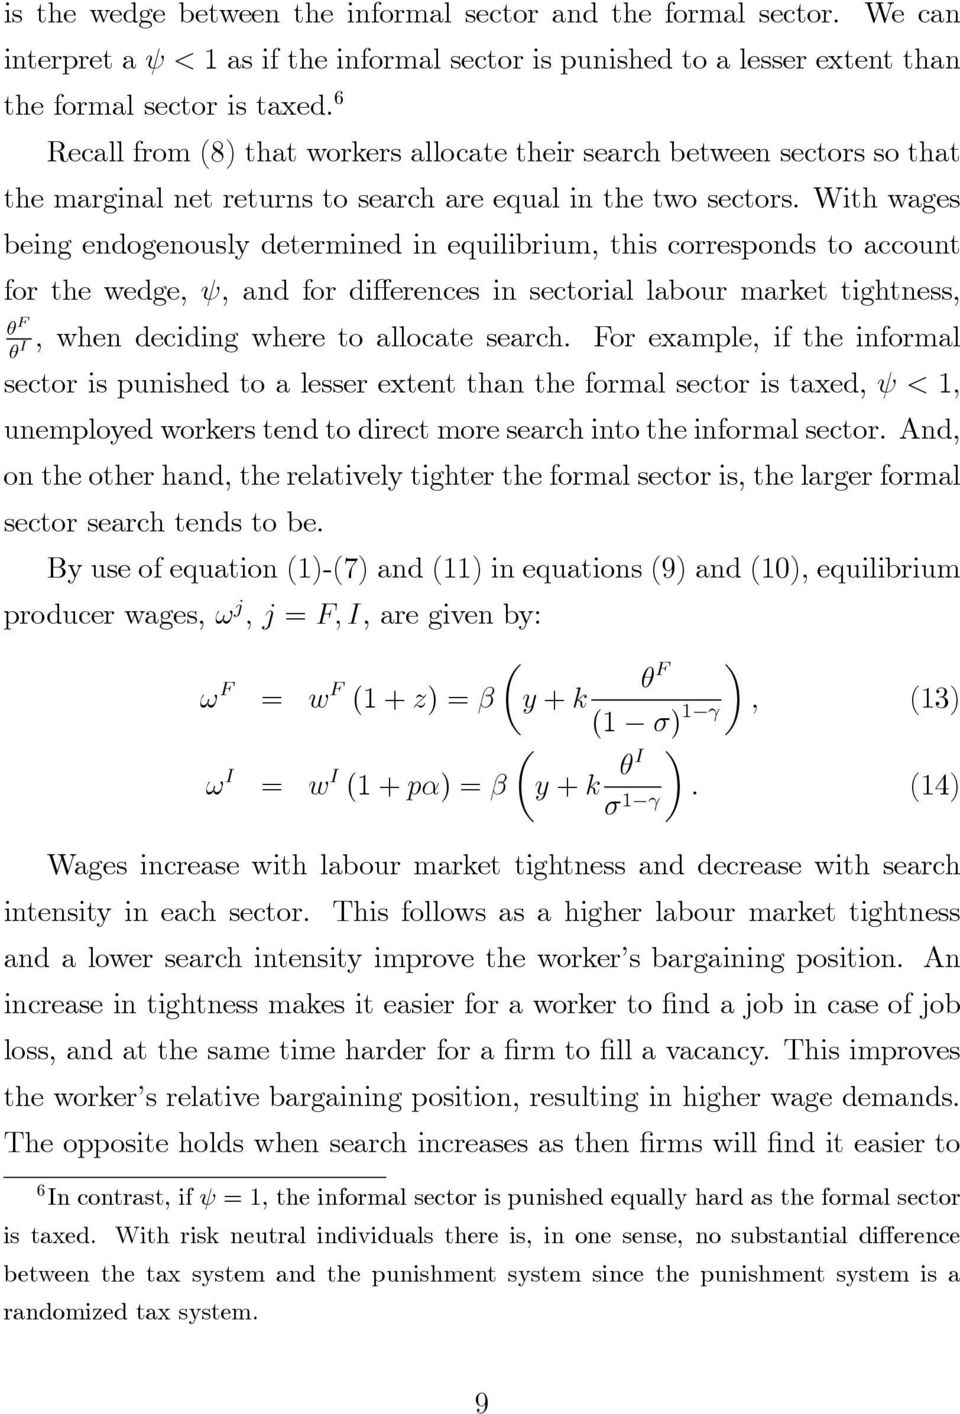 With wages being endogenously determined in equilibrium, this corresponds to account for the wedge, ψ, and for differences in sectorial labour market tightness, θ F θ I, when deciding where to